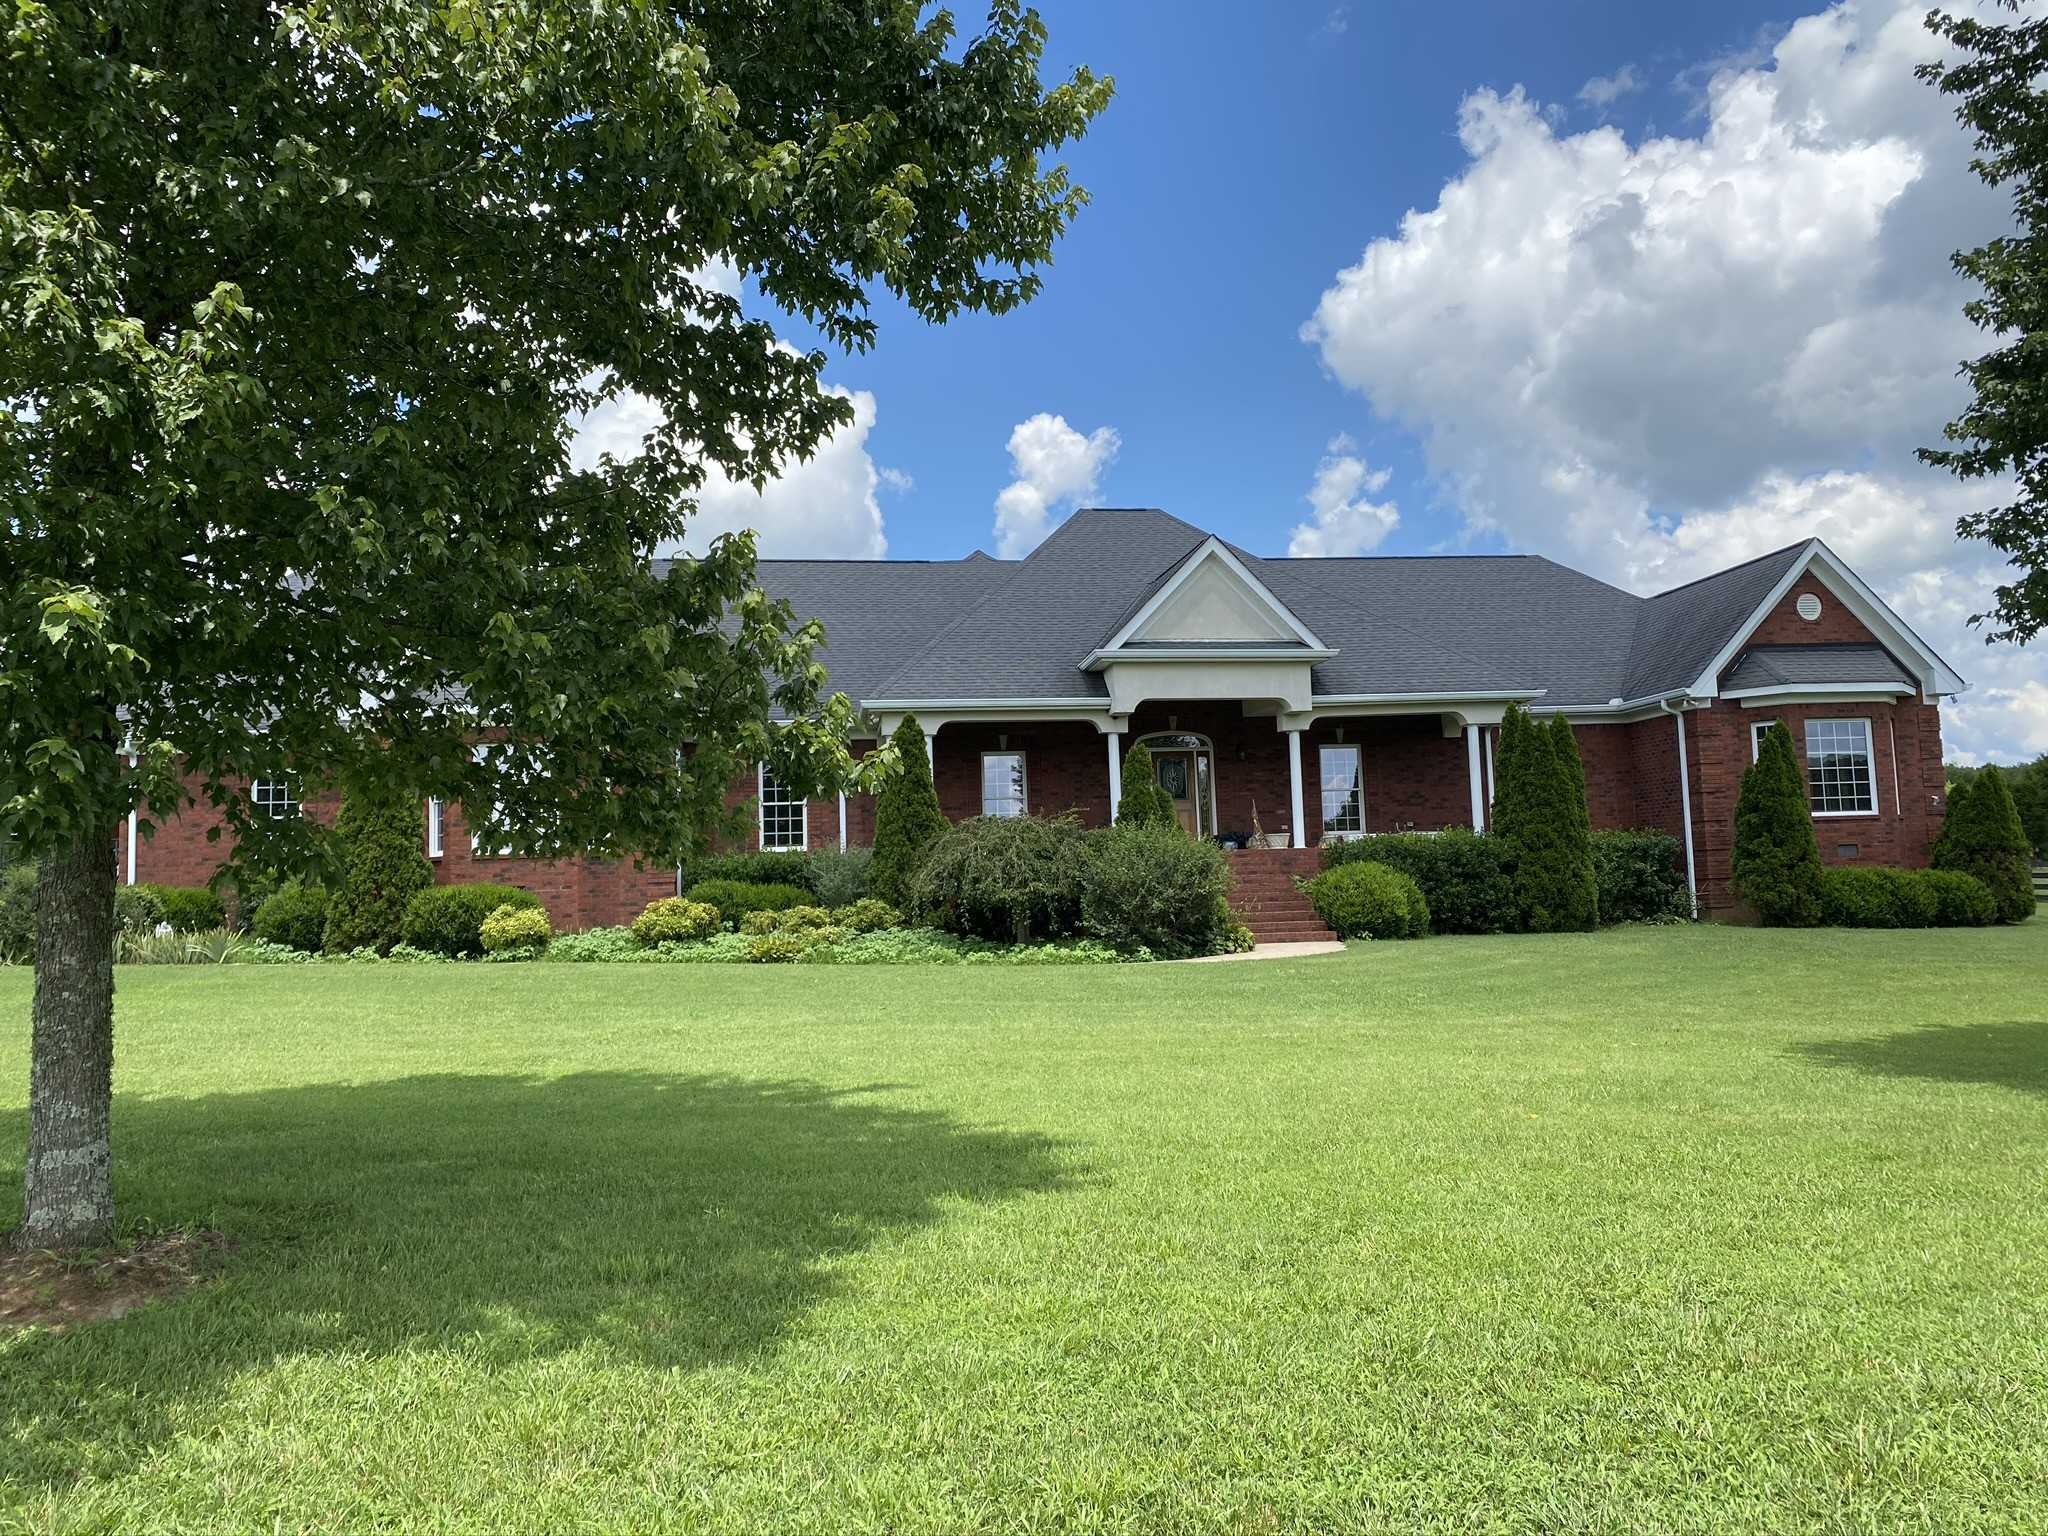 $1,300,000 - 5Br/5Ba -  for Sale in Young Estate, Mount Juliet